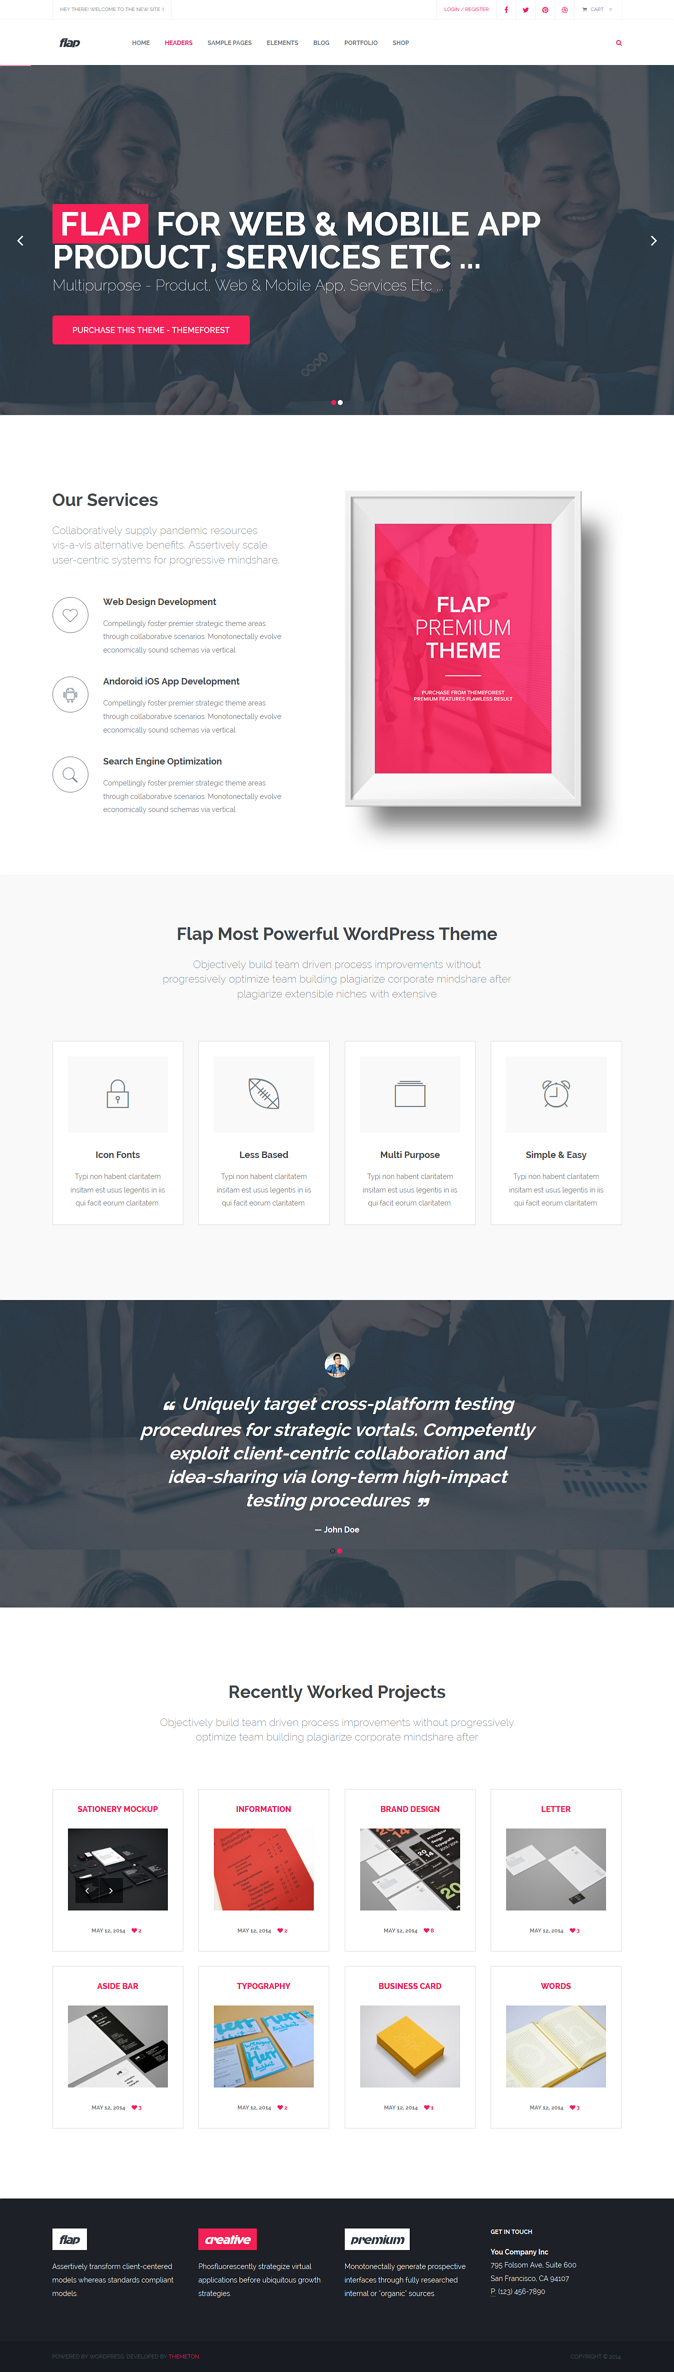 FLAP Business WordPress Theme is an multipurpose theme. This theme is perfect for any kind of we ...